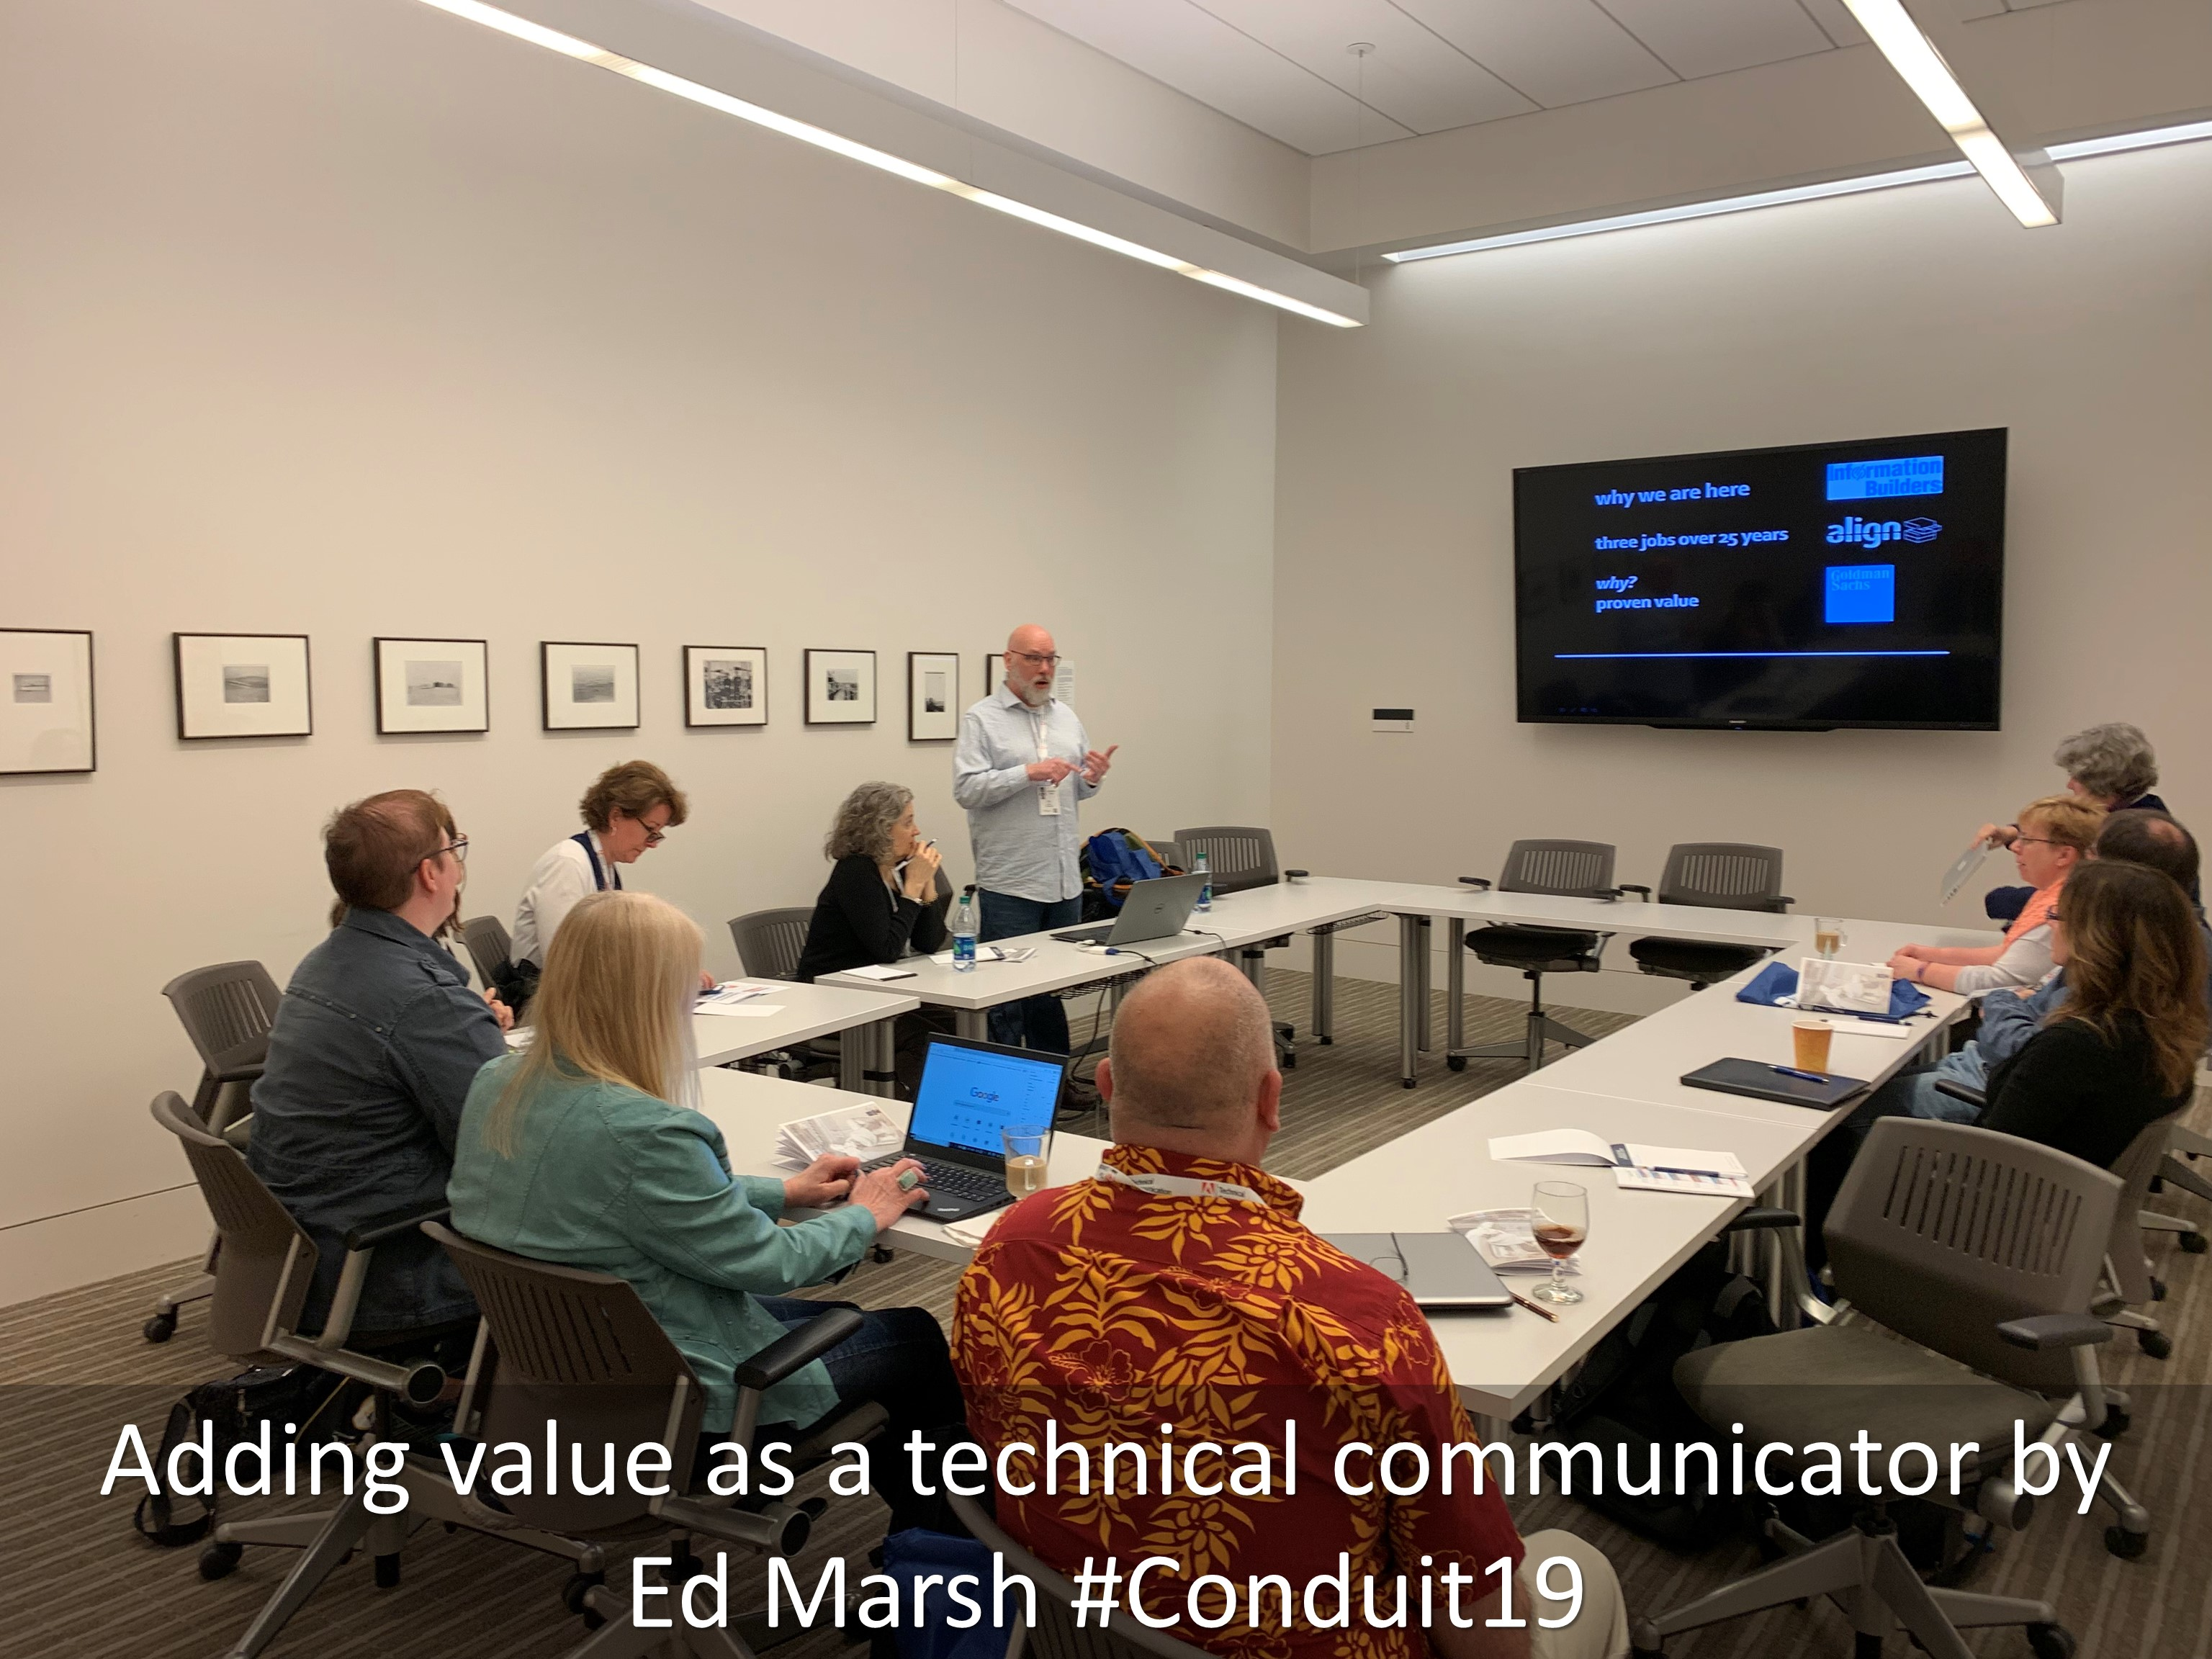 06 Adding value as a technical communicator by Ed Marsh Conduit19